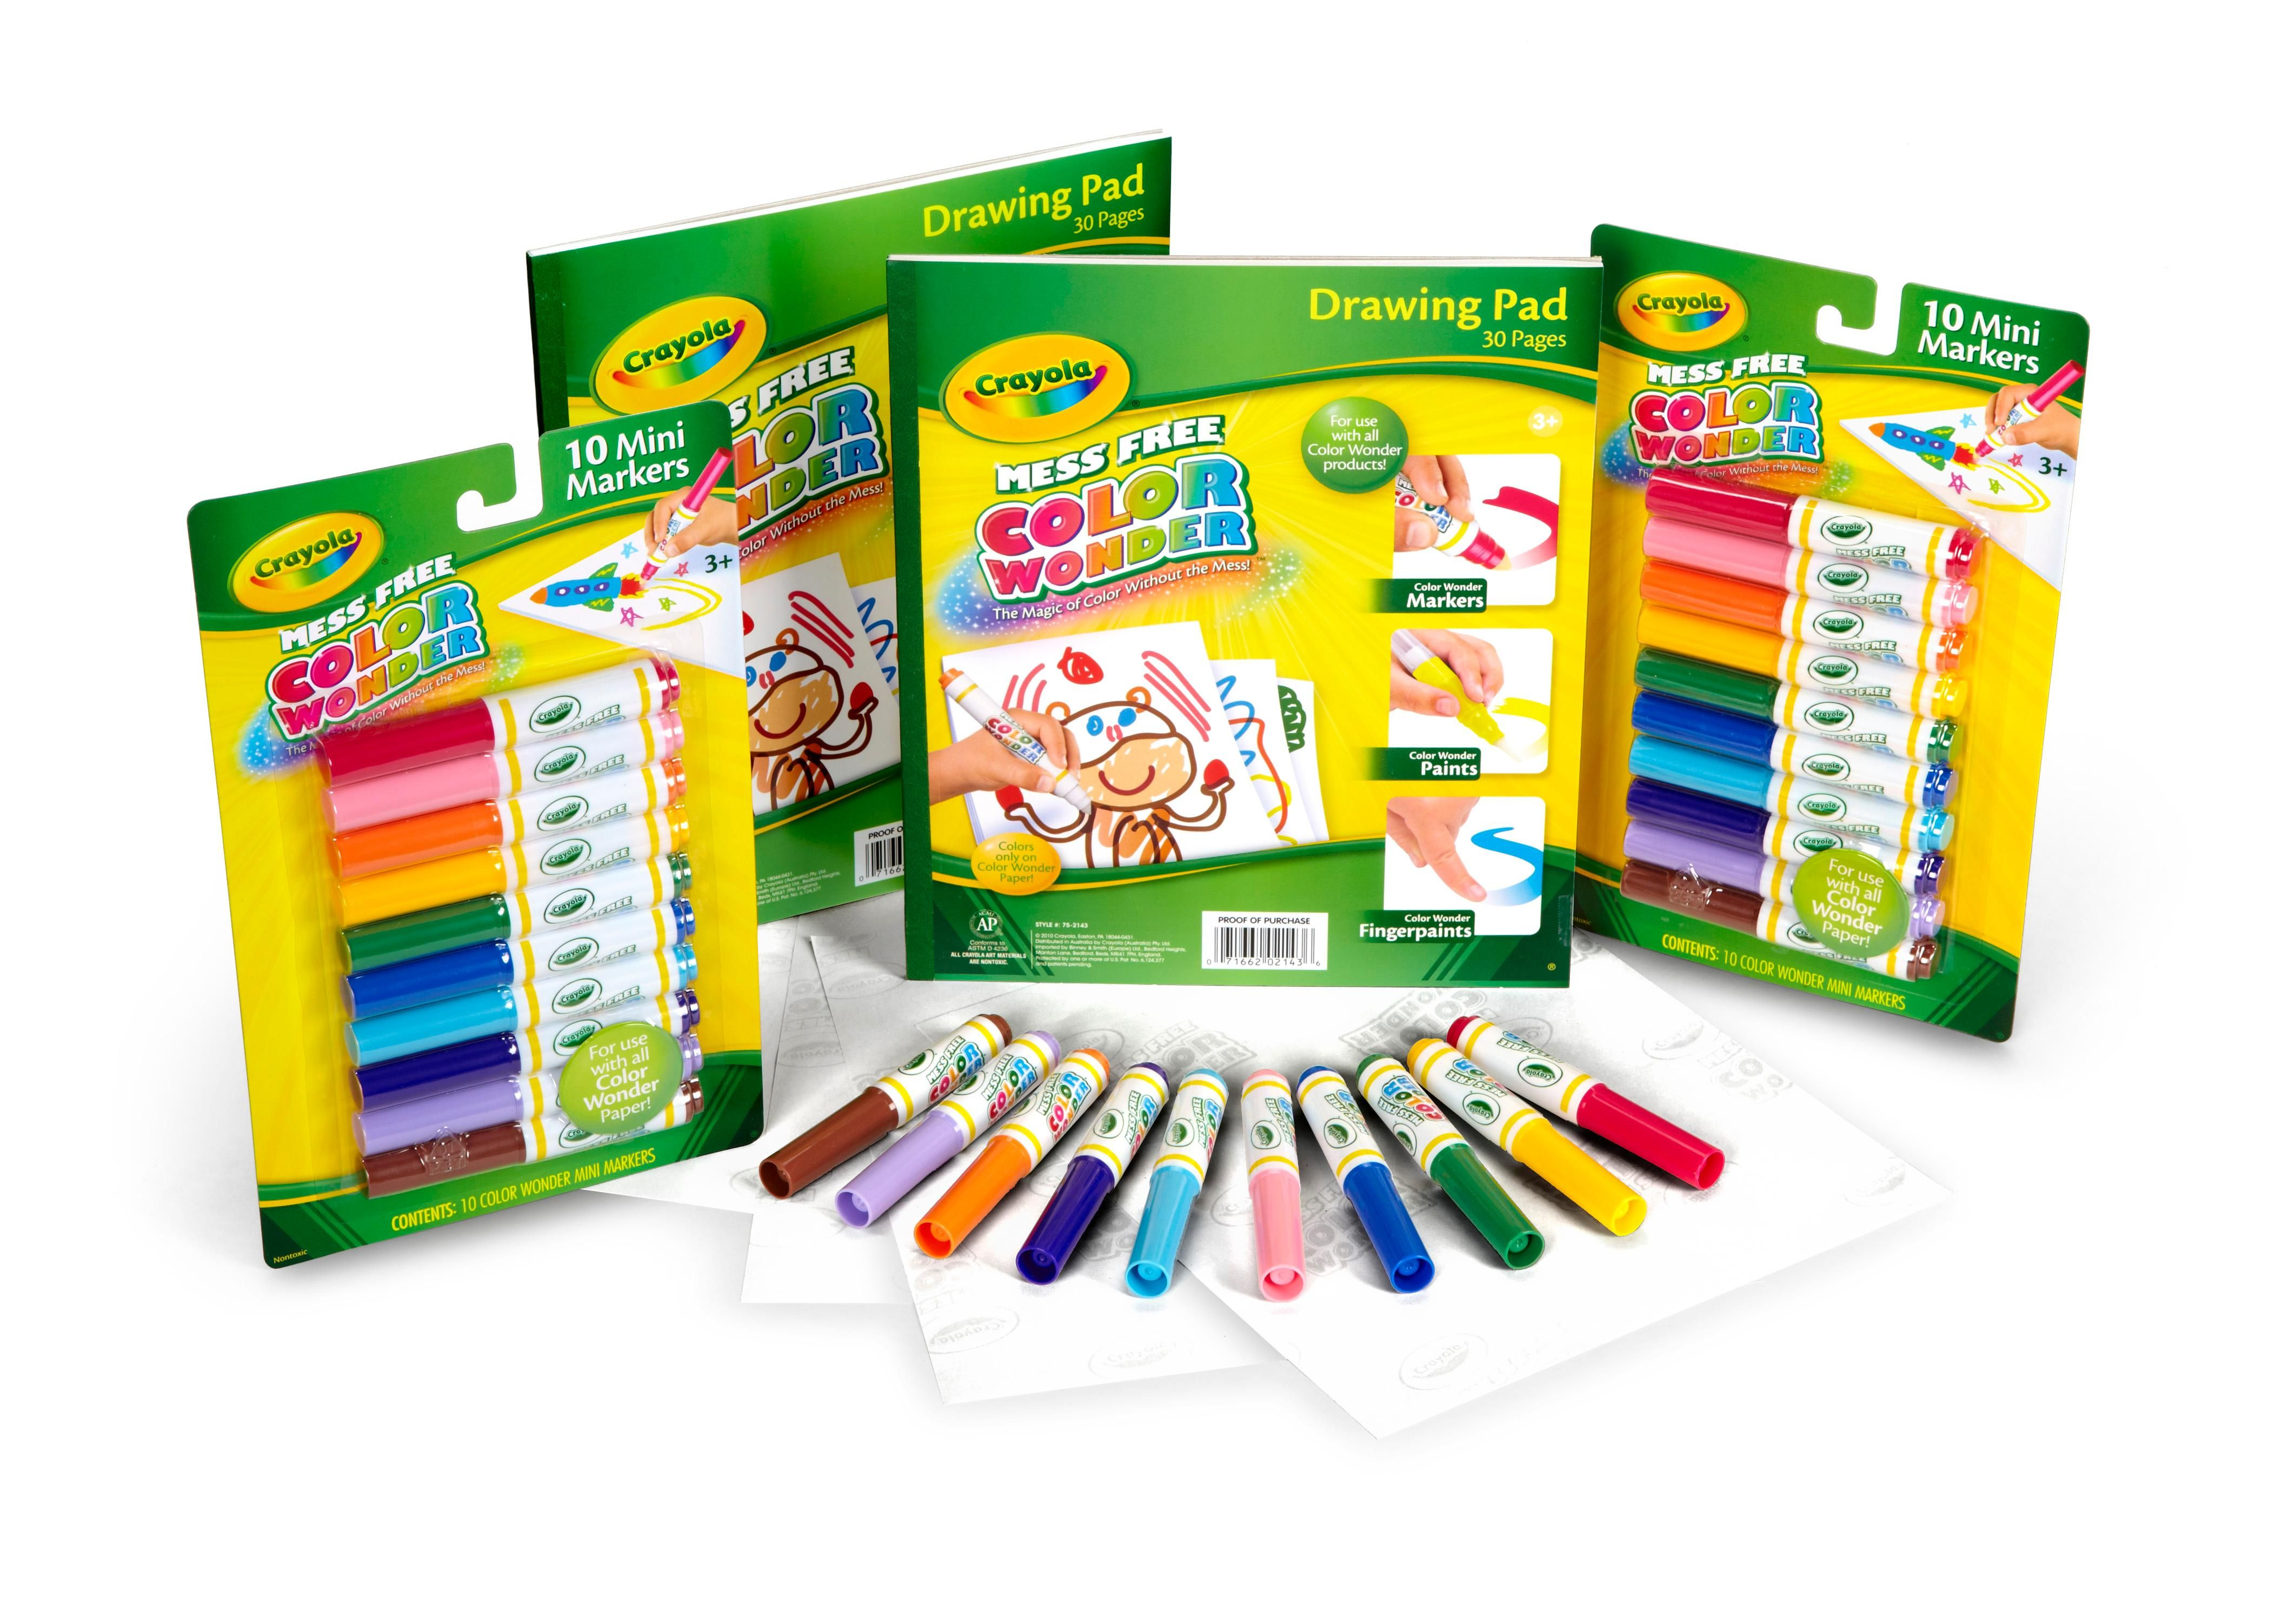 AmazonSmile: Crayola Color Wonder Mess Free Coloring, No Mess ...